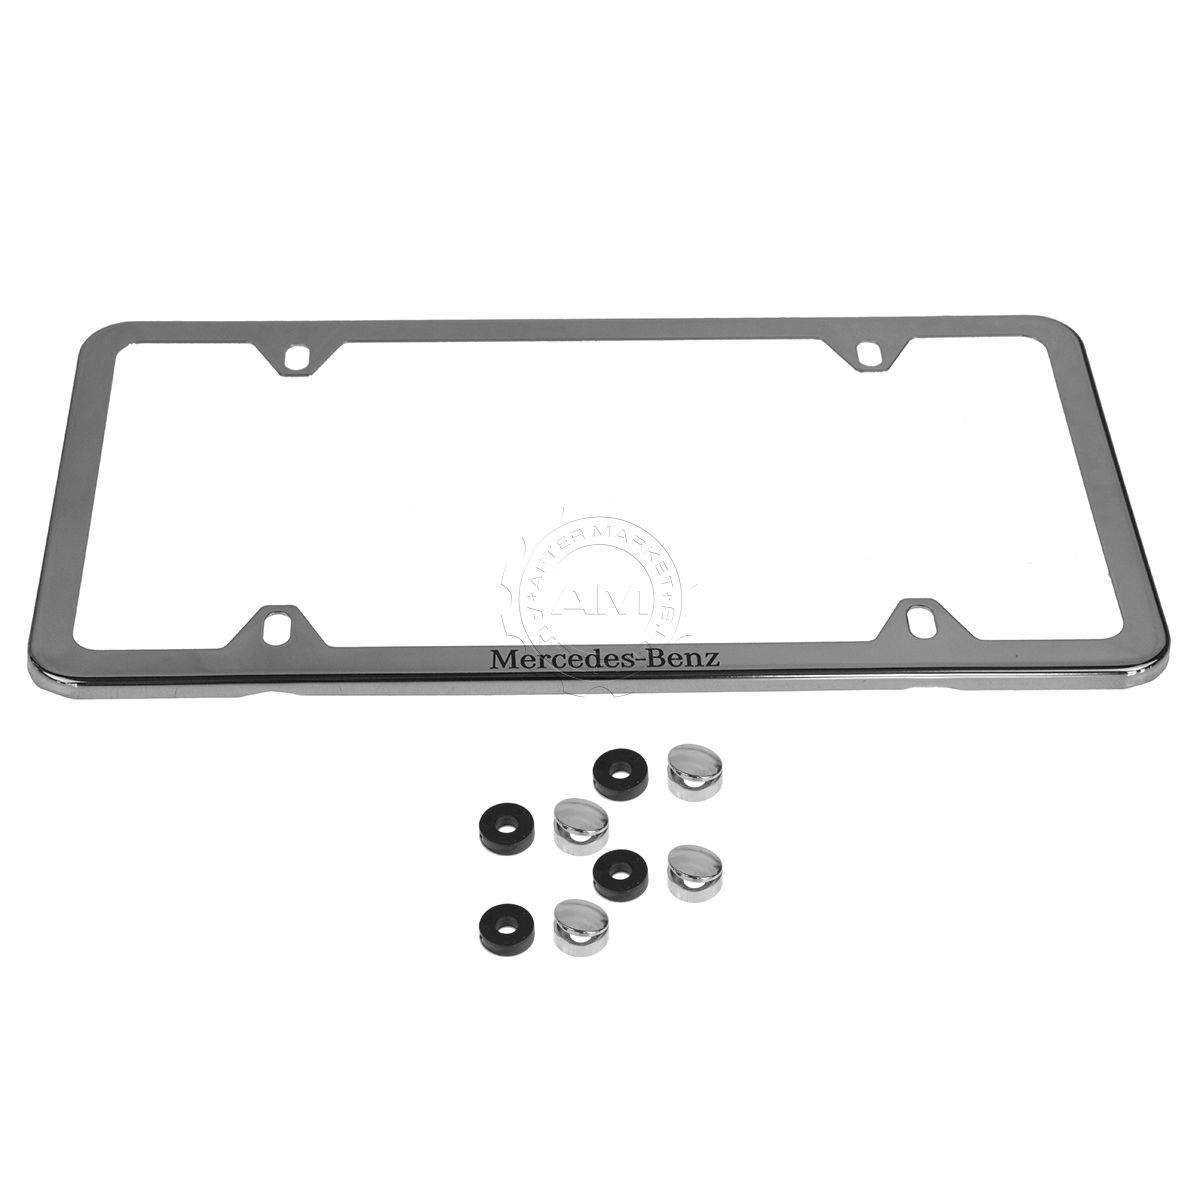 OEM Q6880124 License Plate Frame Polished Stainless Steel for ...